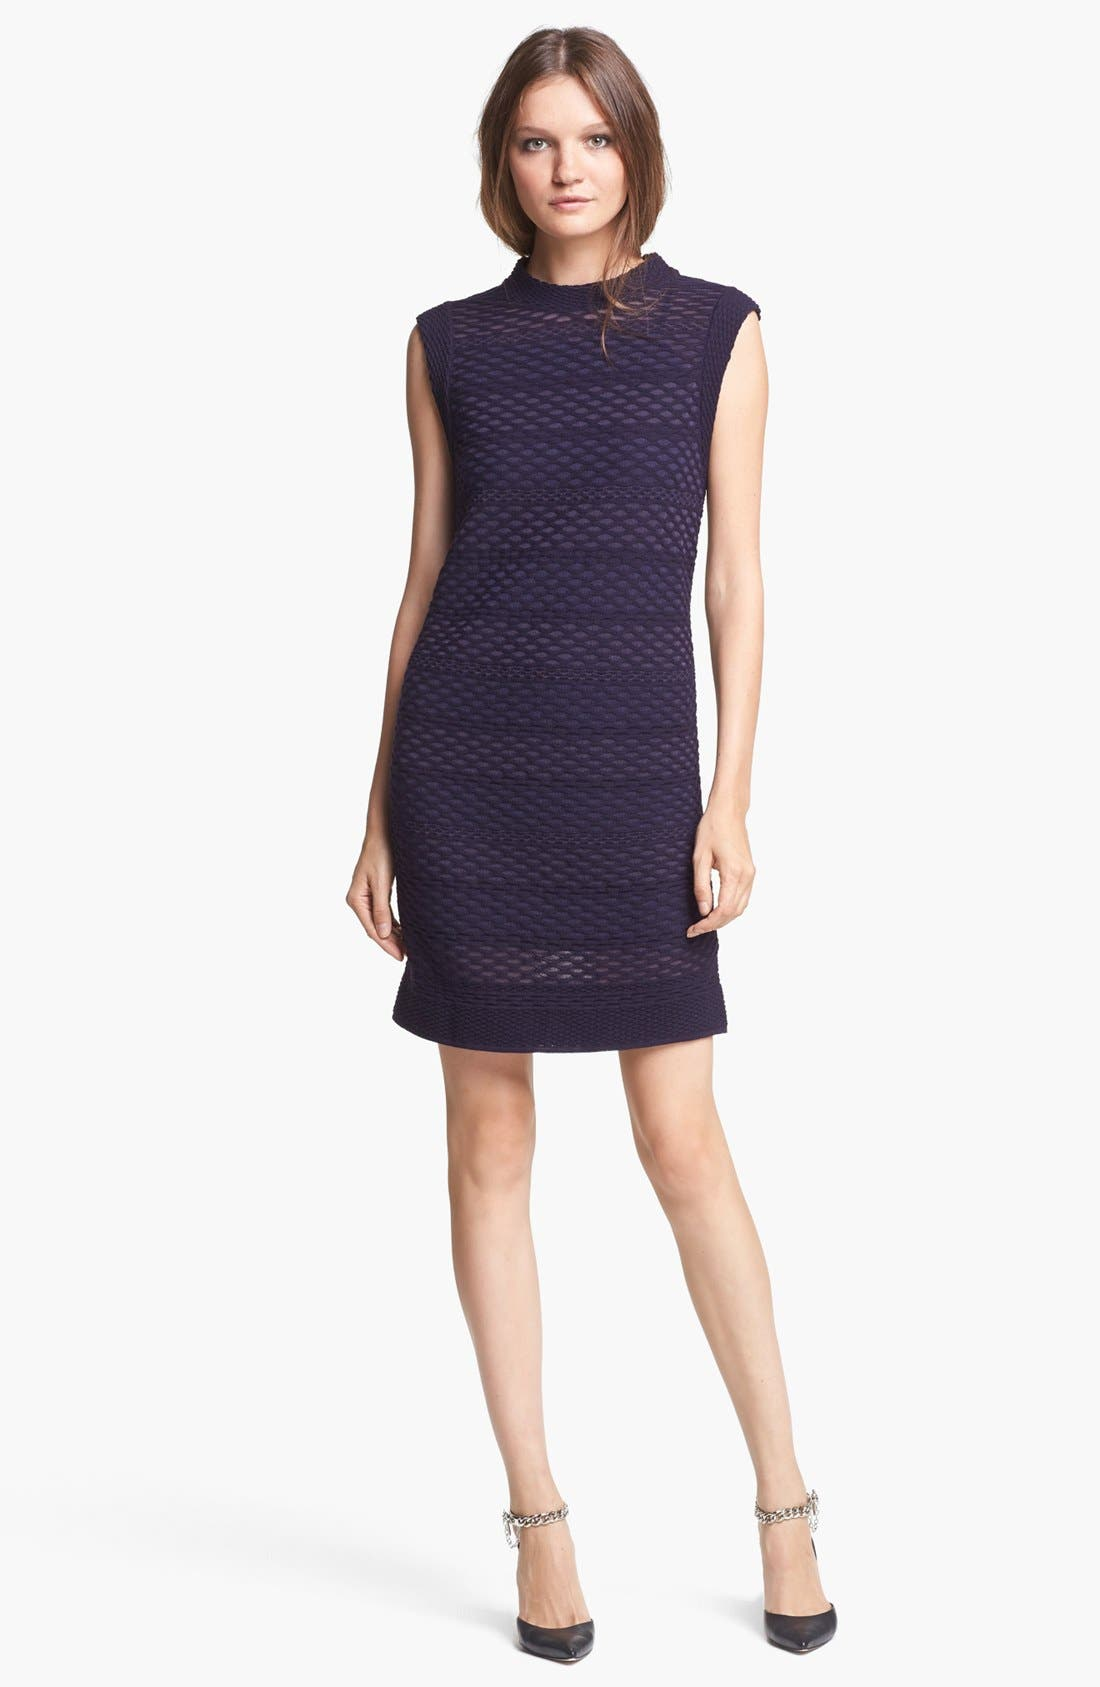 Alternate Image 1 Selected - M Missoni Honeycomb Pattern Knit Dress